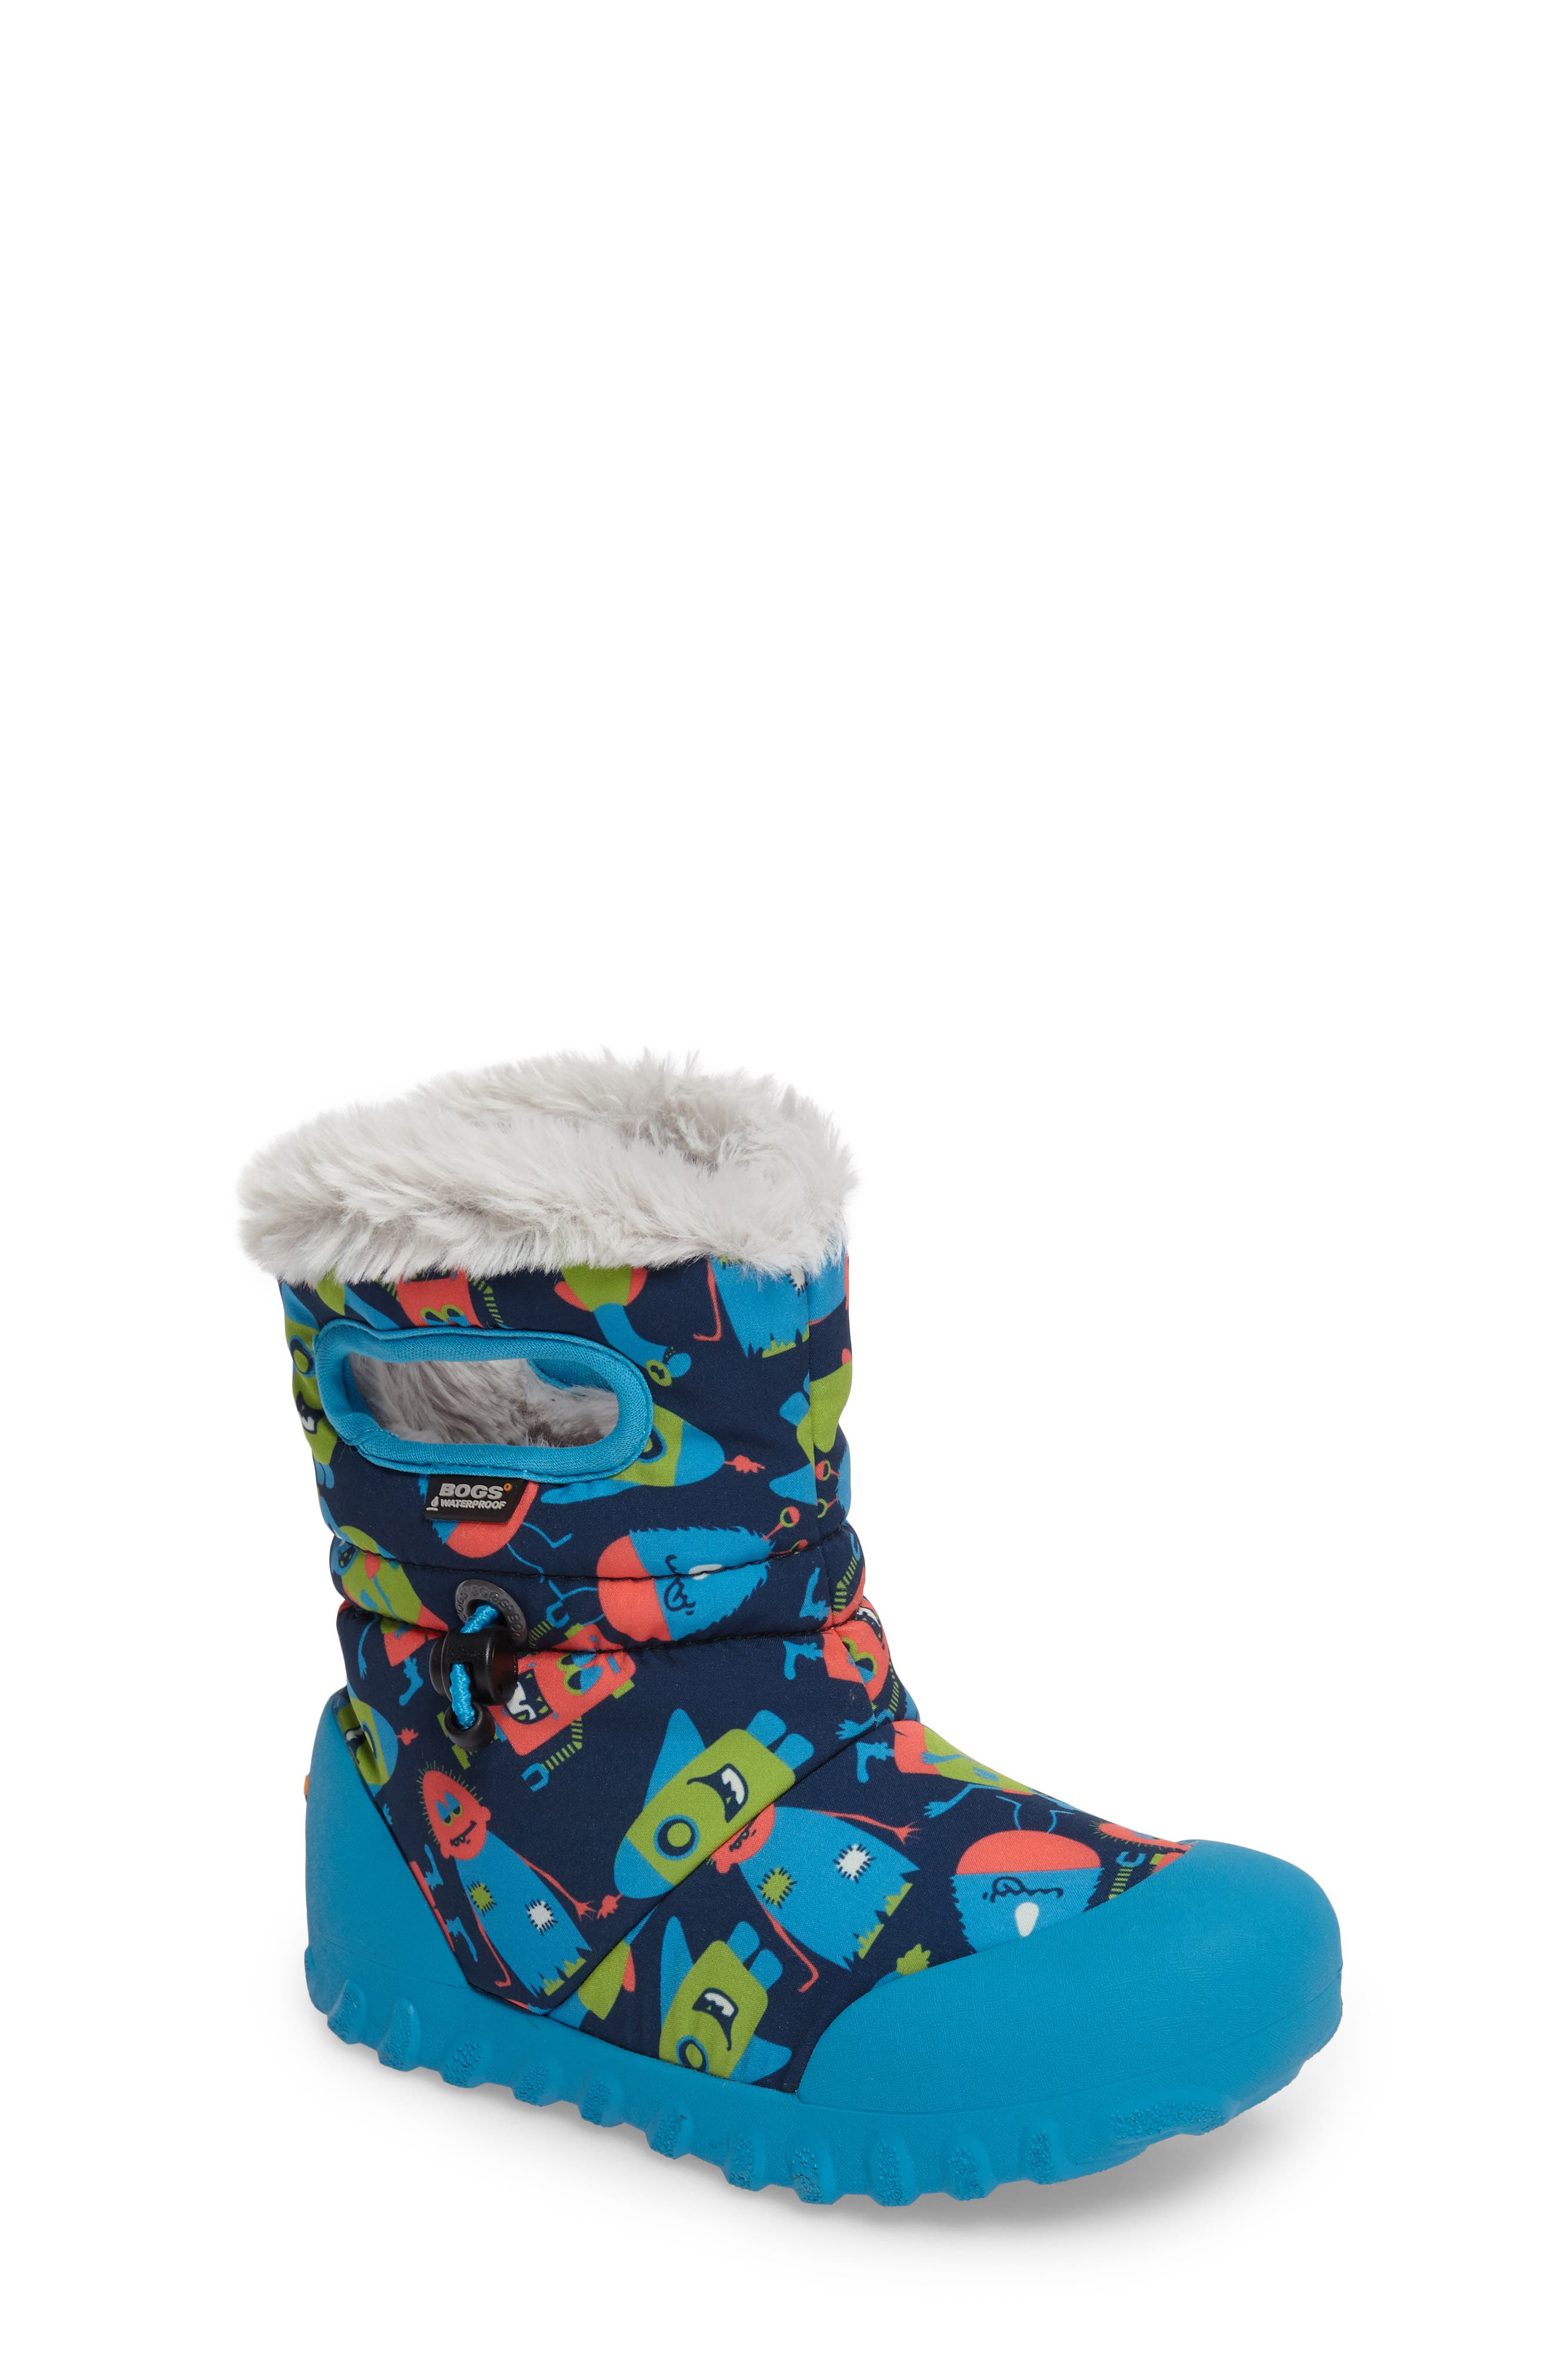 Main Image - Bogs B-MOC Monsters Waterproof Insulated Faux Fur Boot (Toddler & Little Kid)